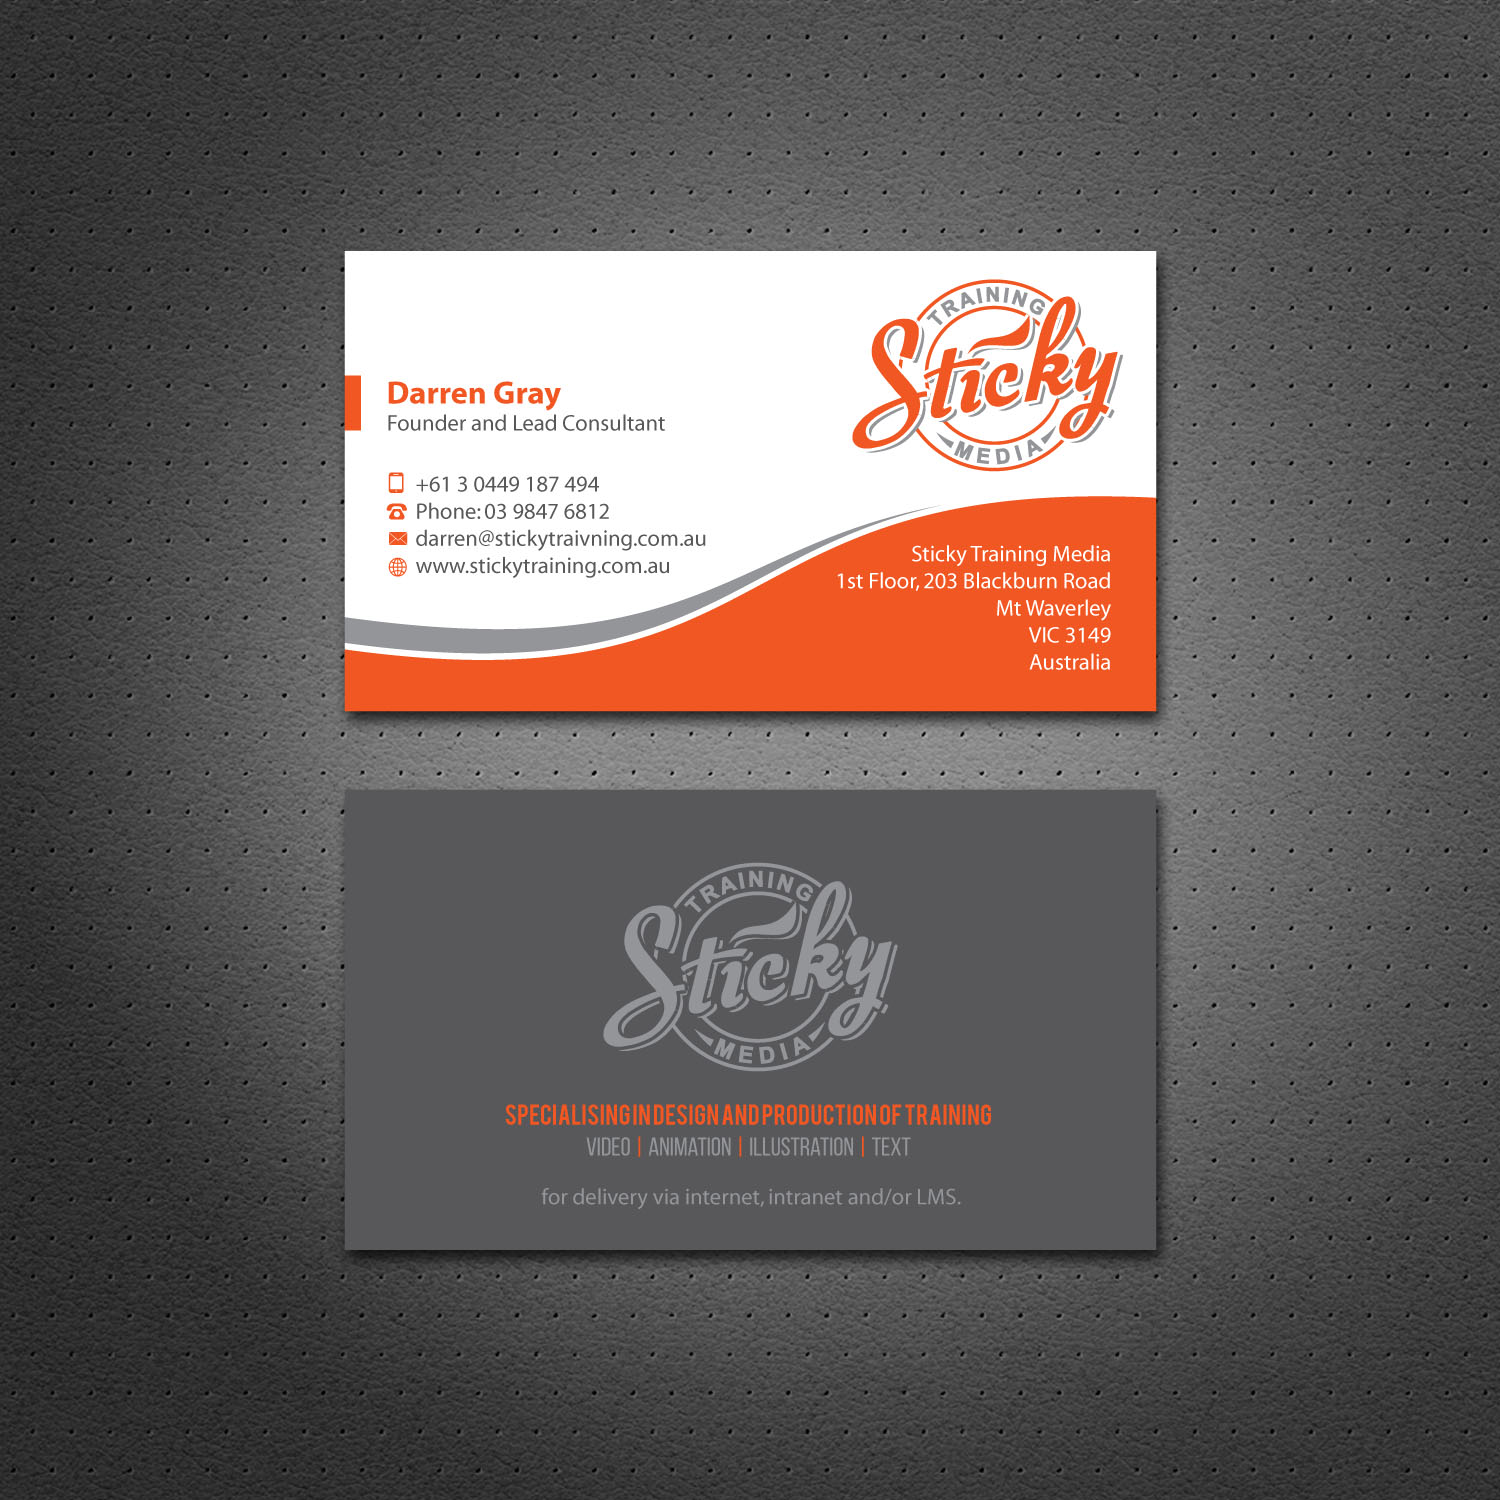 Serious modern training business card design for a company by business card design by dezero for this project design 11901843 reheart Choice Image